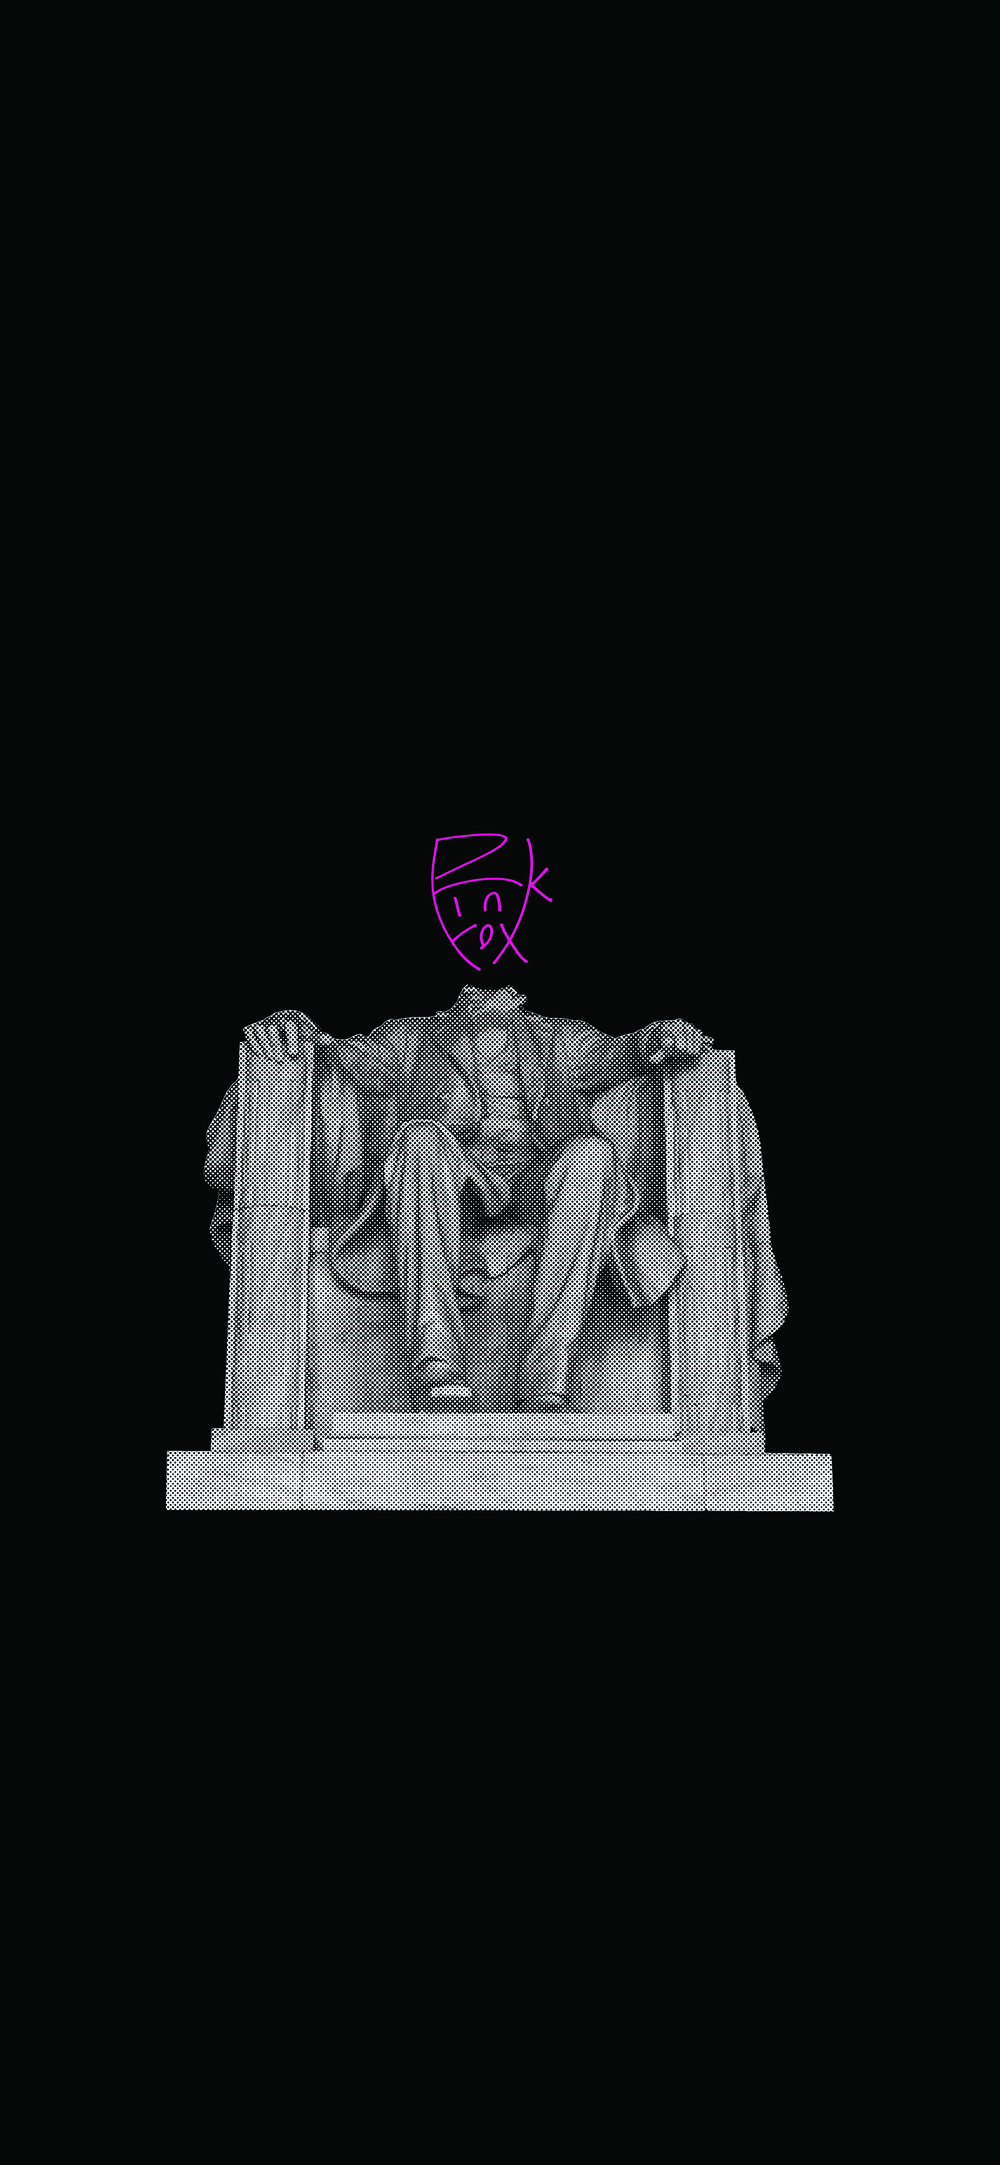 iPhone X BG - Lincoln.jpg